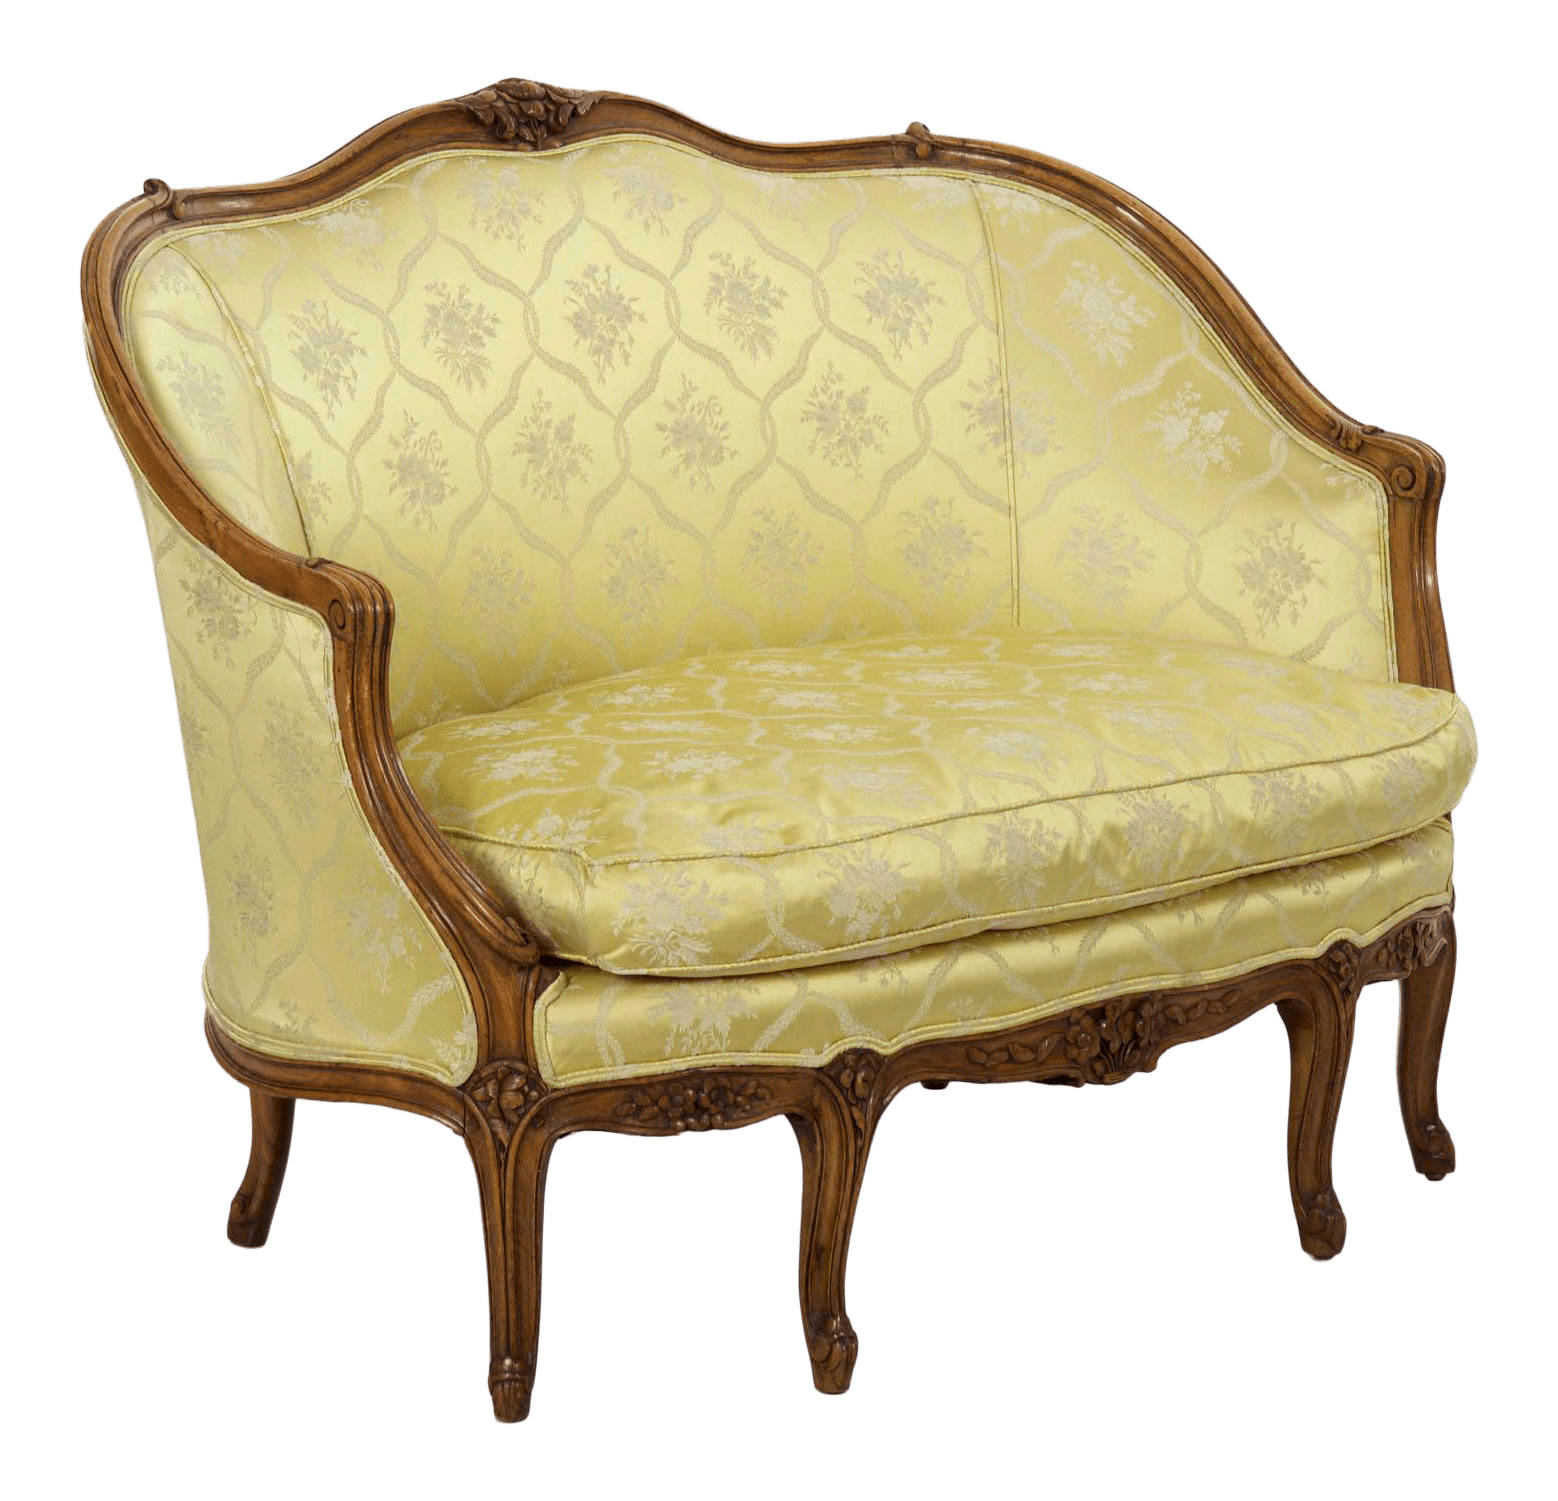 Canape Sofa 19th Century French Antique Canapé Sofa Settee In Louis Xv Style